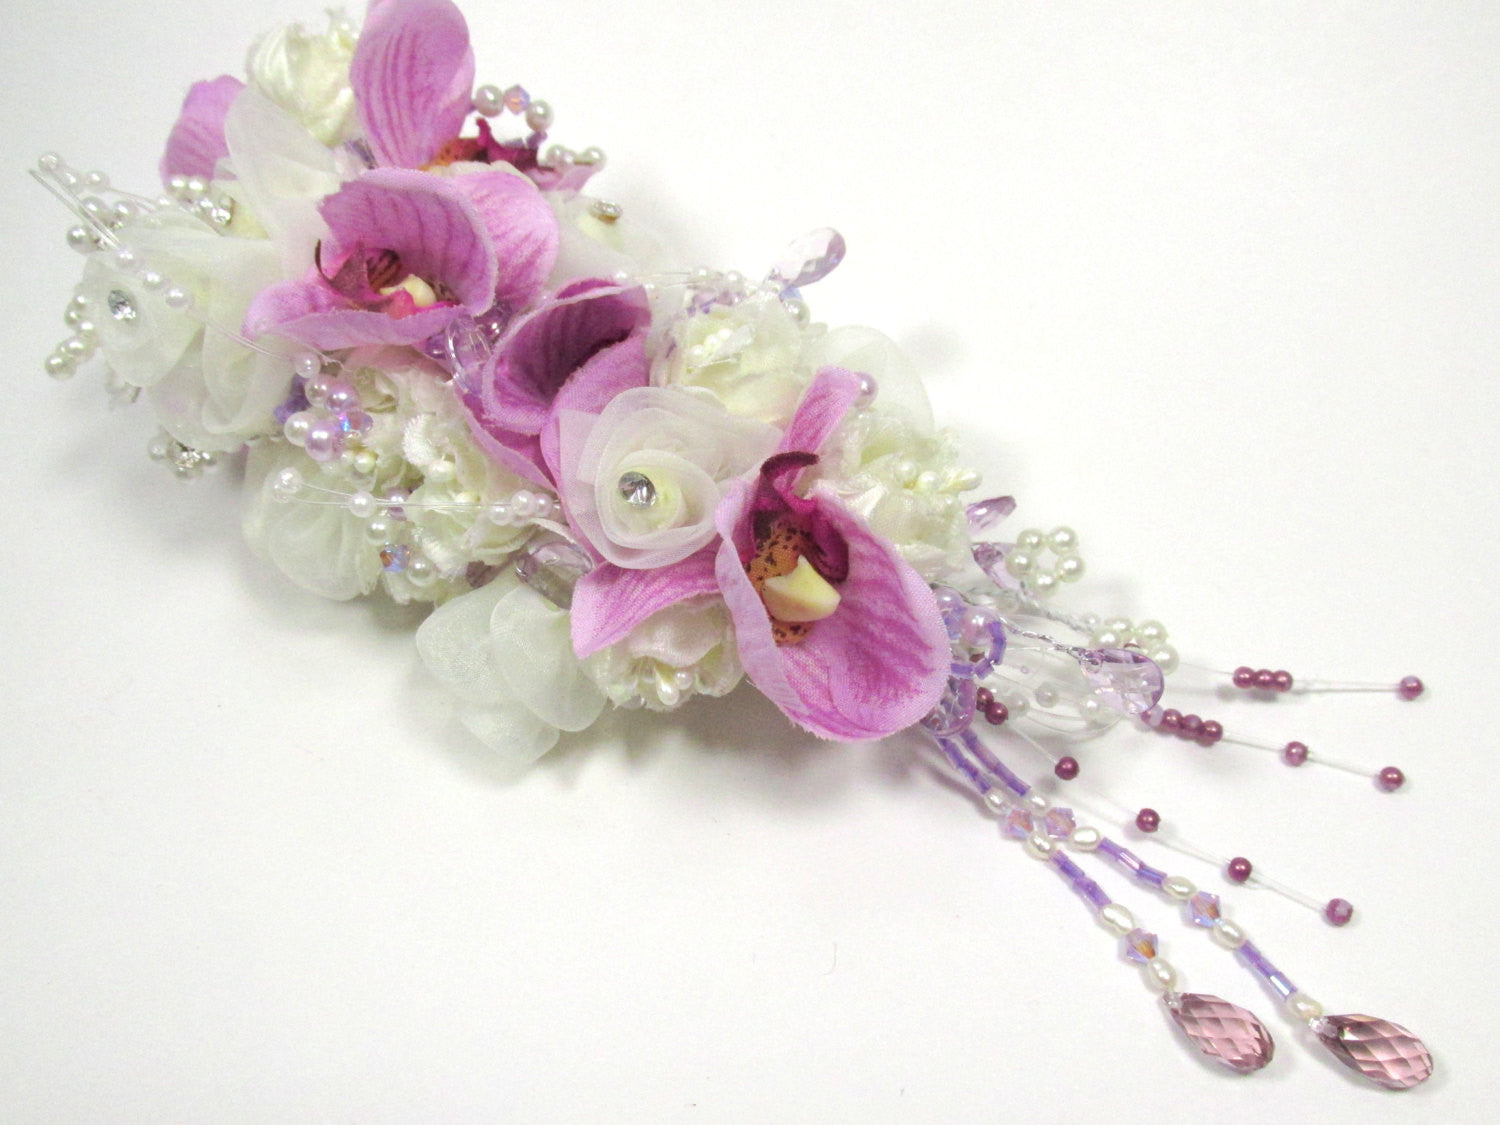 Bridal Hair Clip in Lavender and Cream with Austrian Crystal Briolette Drops - Odyssey Creations